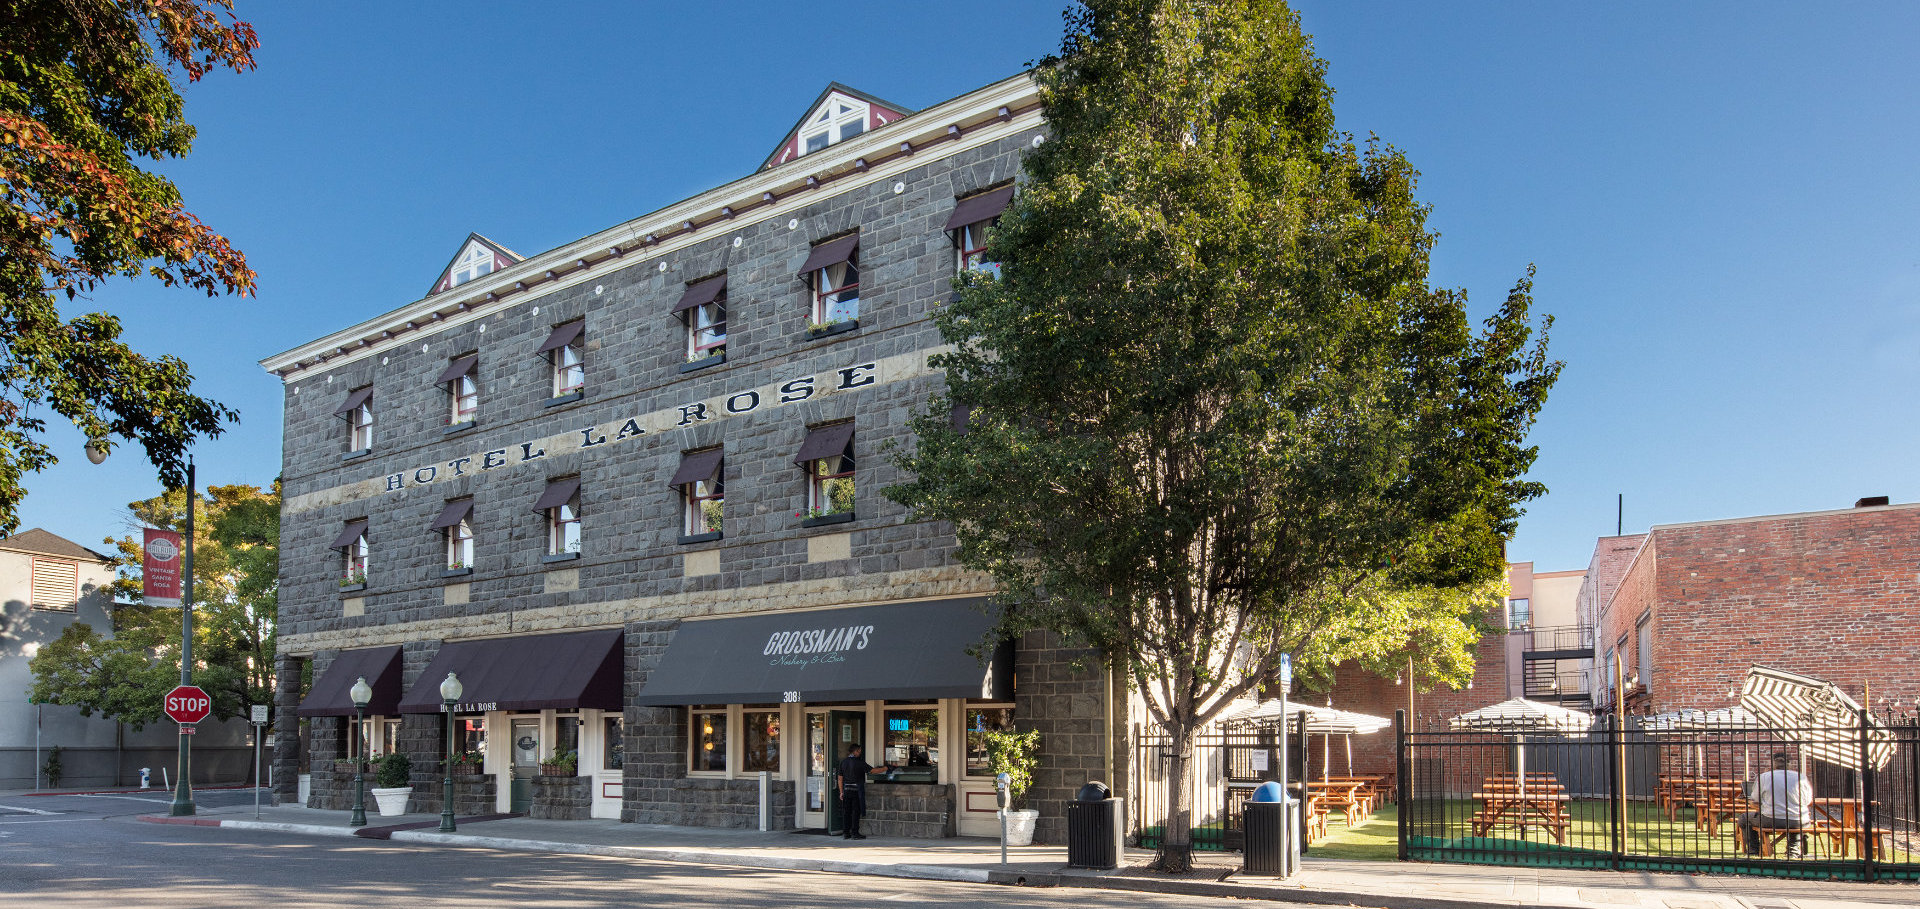 Welcome to the historic Hotel La Rose – A Santa Rosa Landmark